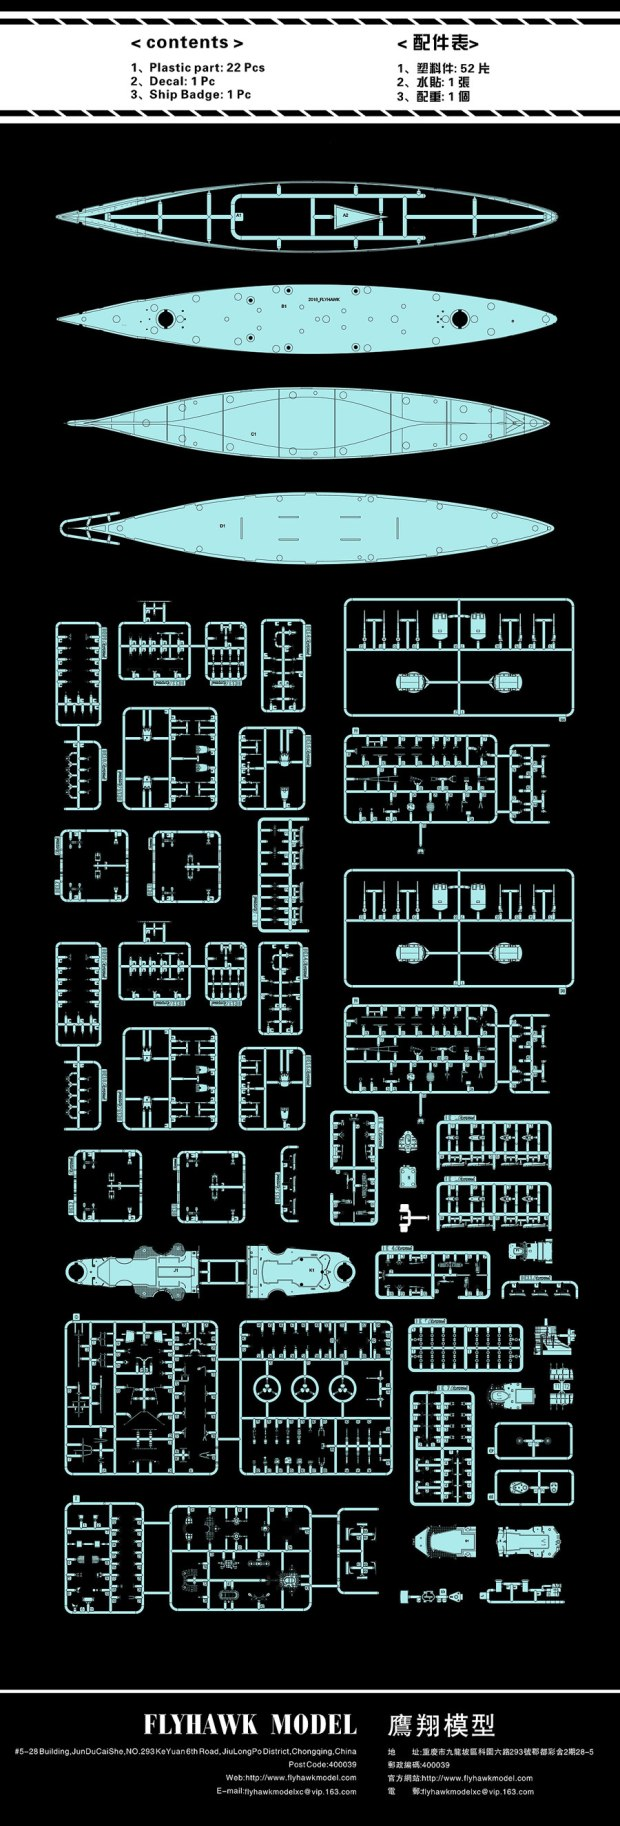 Flyhawk Model Toyland Hobby Modeling Magazine Wwii Willys And Ford Late 1945 Jeep Rotary Main Switch Wiring Diagram Fh710037 German Battleship Bismarck 1941 Photo Etching Sheet Fh710035 Wooden Deck For Fh710036